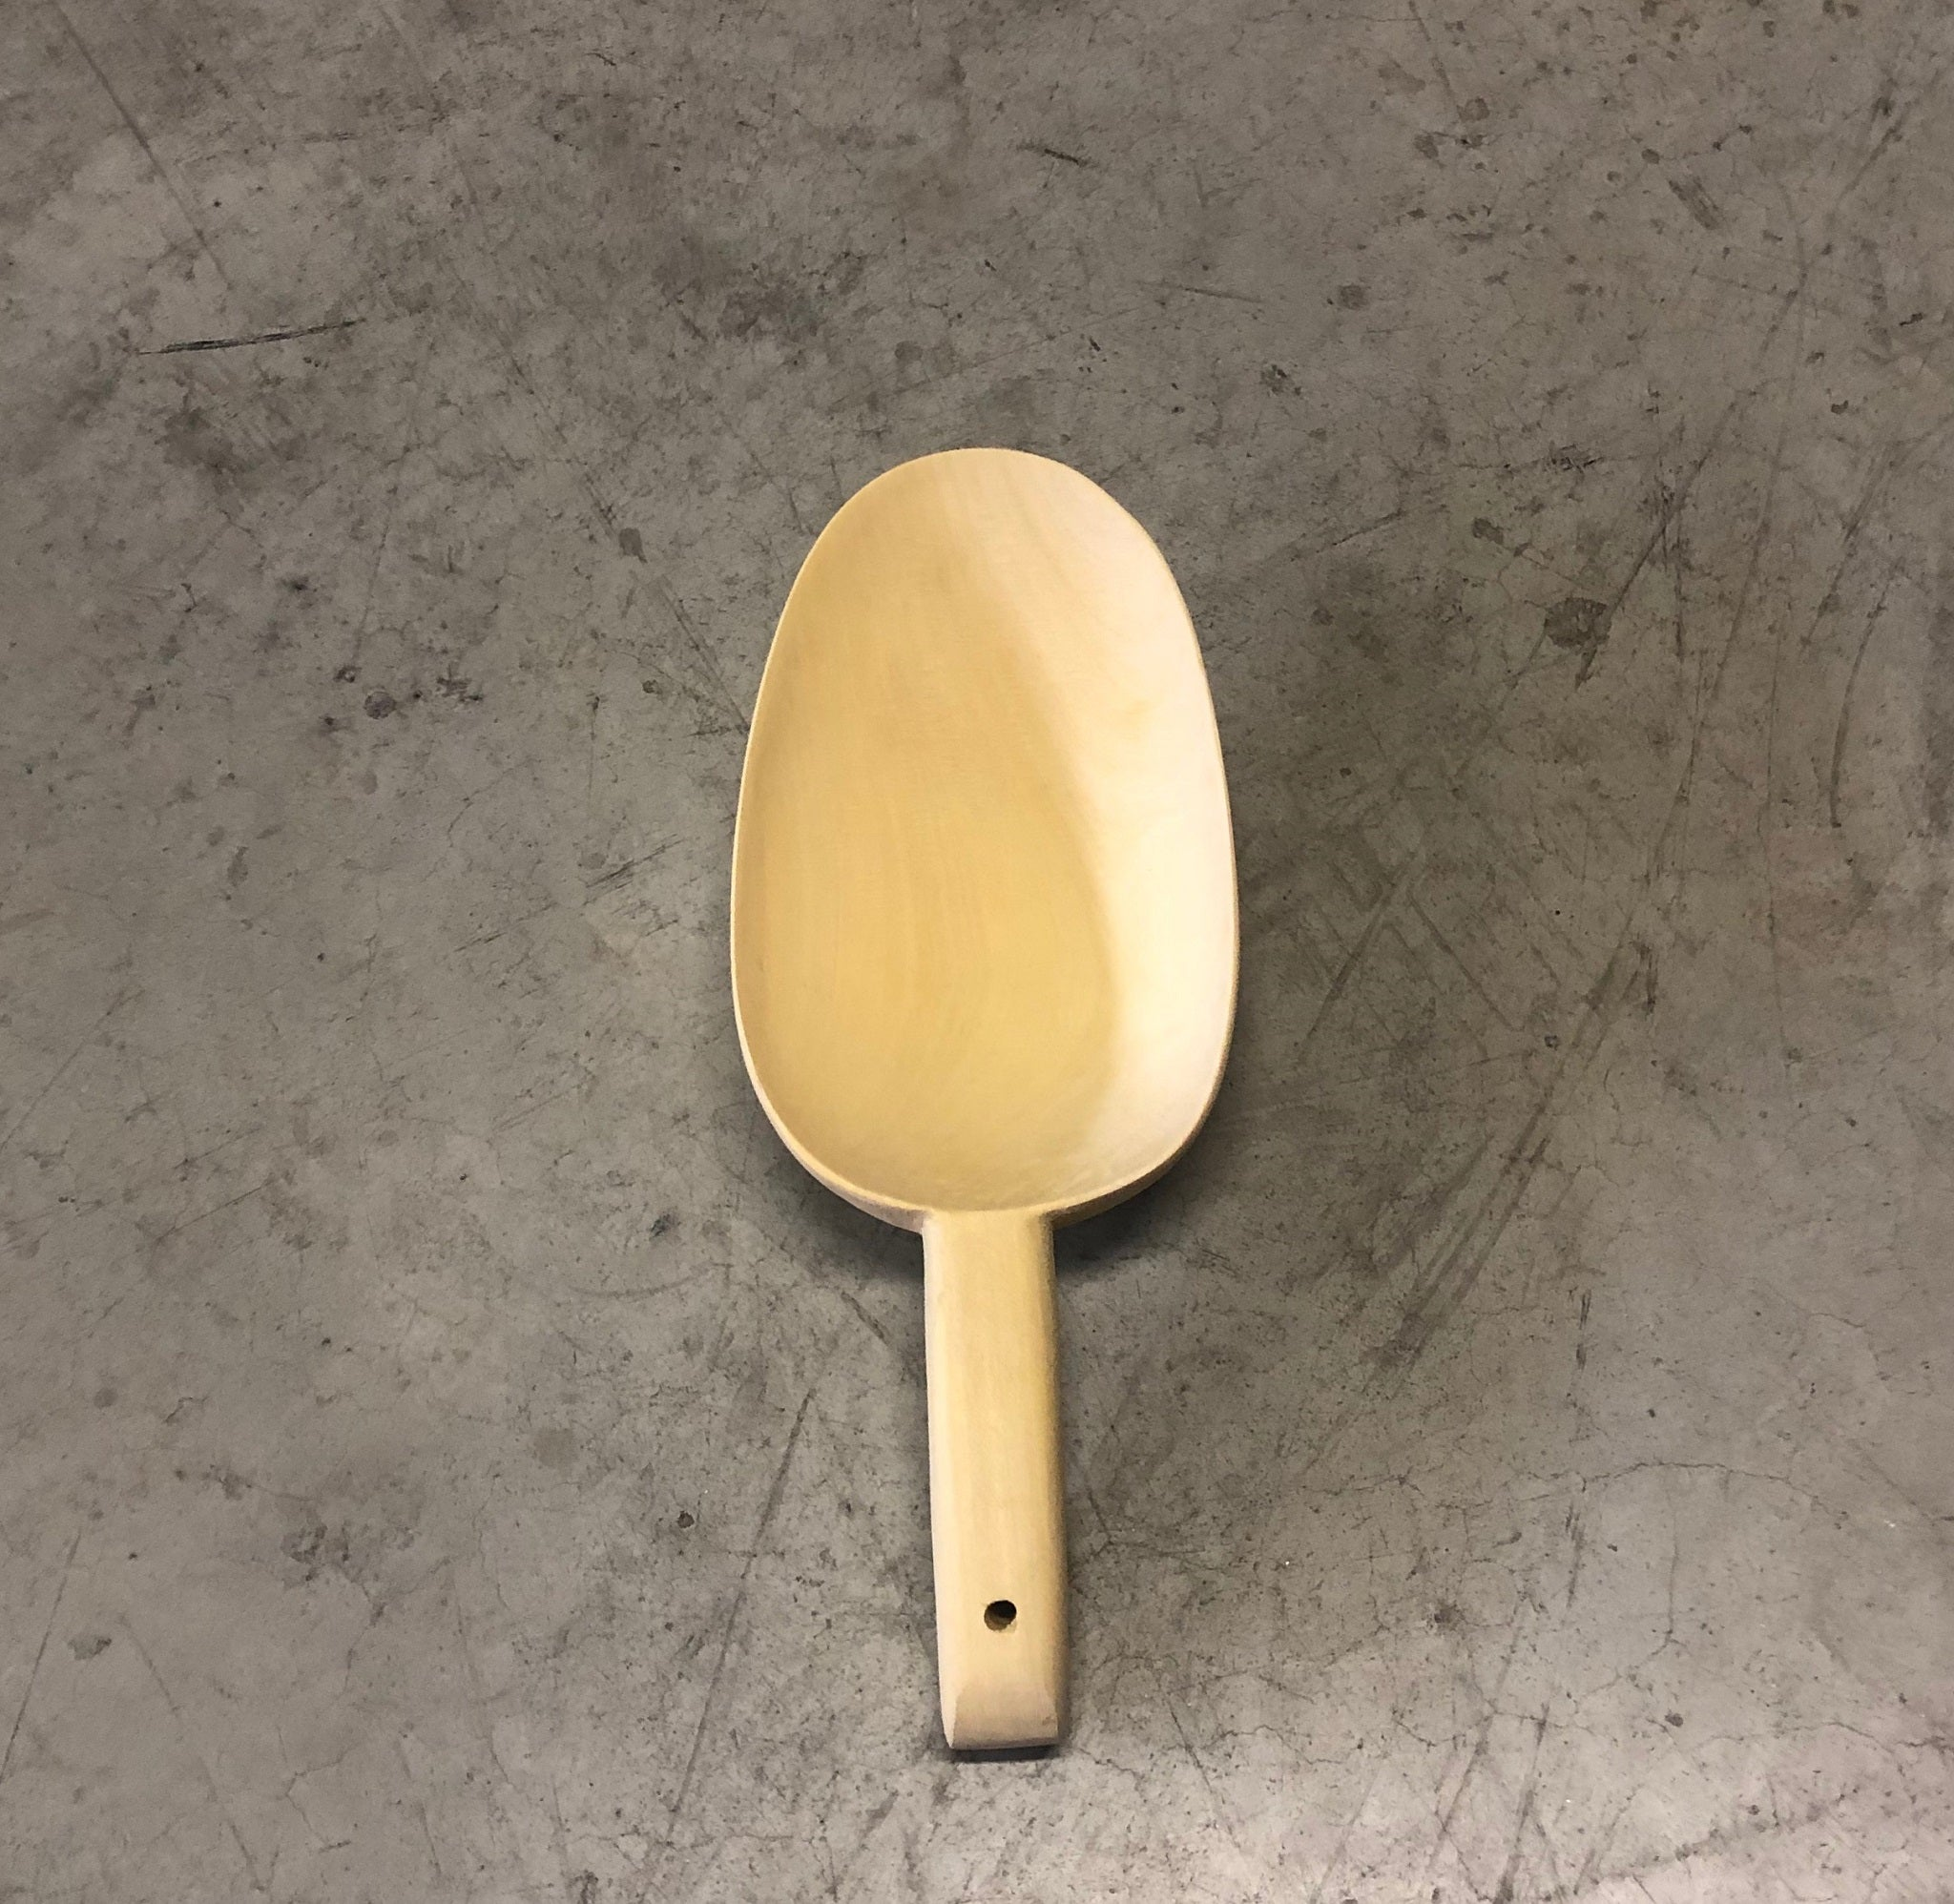 Scoop spoon in wood